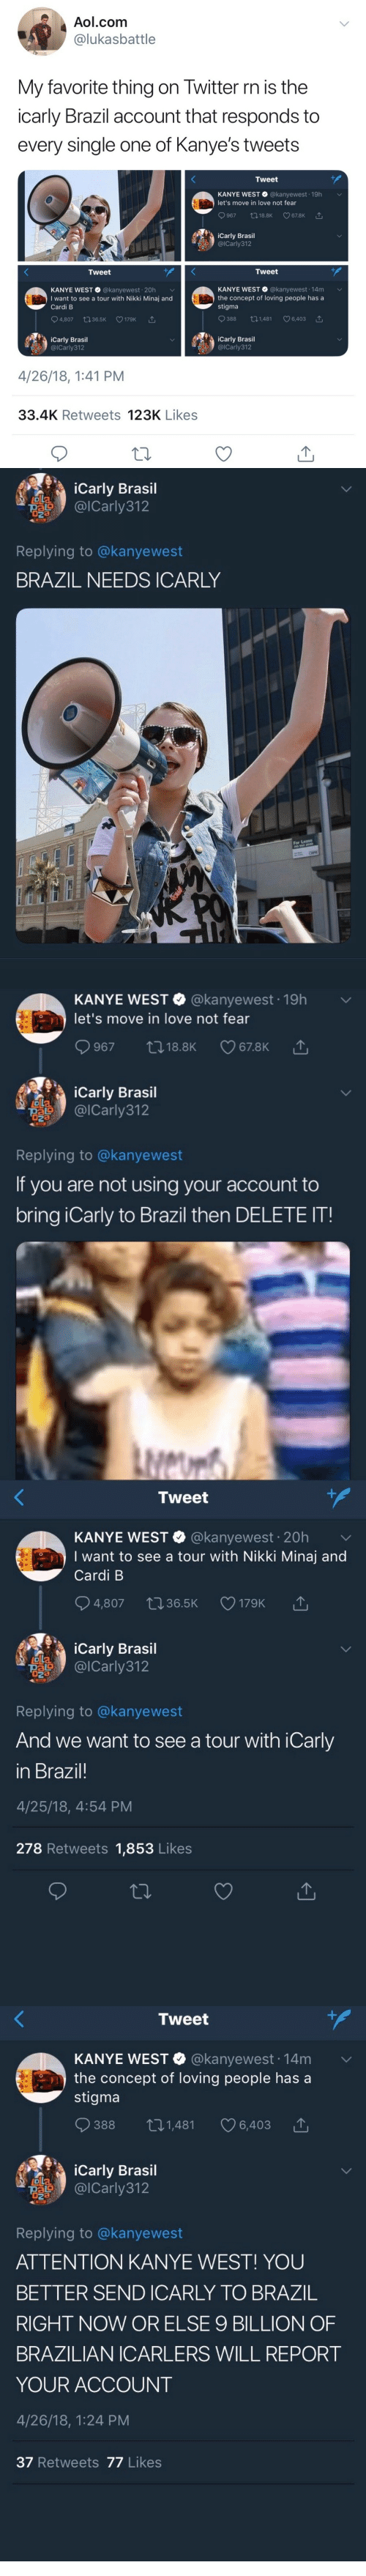 iCarly, Kanye, and Love: Aol.com  lukasbattle  My favorite thing on Iwitter rn is the  icarly Brazil account that responds to  every single one of Kanye's tweets  Tweet  KANYE WEST @kanyewest 19h  let's move in love not fear  9967 18.8K CO 67.8K △  iCarly Brasil  @ICarly312  Tweet  Tweet  KANYE WEST @kanyewest 20h  I want to see a tour with Nikki Minaj and  Cardi B  KANYE WEST @kanyewest 14m  the concept of loving people hasa  stigma  04,807 ロ36.5K V179K  388 t01,481 6,403  iCarly Brasil  @ICarly312  iCarly Brasil  @lCarly312  4/26/18, 1:41 PM  33.4K Retweets 123K Likes   iCarly Brasil  麗 ▽)' @ICarly31 2  Replying to @kanyewest  BRAZIL NEEDS ICARLY  alo   KANYE WEST @kanyewest 19h  let's move in love not fear  iCarly Brasil  @lCarly312  Replying to @kanyewest  If you are not using your account to  bring iCarly to Brazil then DELETE IT!   Tweet  KANYE wEST·@kanyewest. 20h ﹀  I want to see a tour with Nikki Minaj and  Cardi B  4,807 t036.5K 179K  '↑  iCarly Brasil  , @lCarly312  Replying to @kanyewest  And we want to see a tour with iCarly  in Brazil!  4/25/18, 4:54 PM  278 Retweets 1,853 Likes   Tweet  KANYE WEST @kanyewest. 14m  the concept of loving people has a  stigma  ﹀  388 ロ1,481 C 6,403  DLa  023  iCarly Brasil  이Carly312  Replying to @kanyewest  ATTENTION KANYE WEST! YOU  BETTER SEND ICARLY TO BRAZ1L  RIGHT NOW OR ELSE 9 BILLION OF  BRAZILIAN ICARLERS WILL REPORT  YOUR ACCOUNT  4/26/18, 1:24 PM  37 Retweets 77 Likes